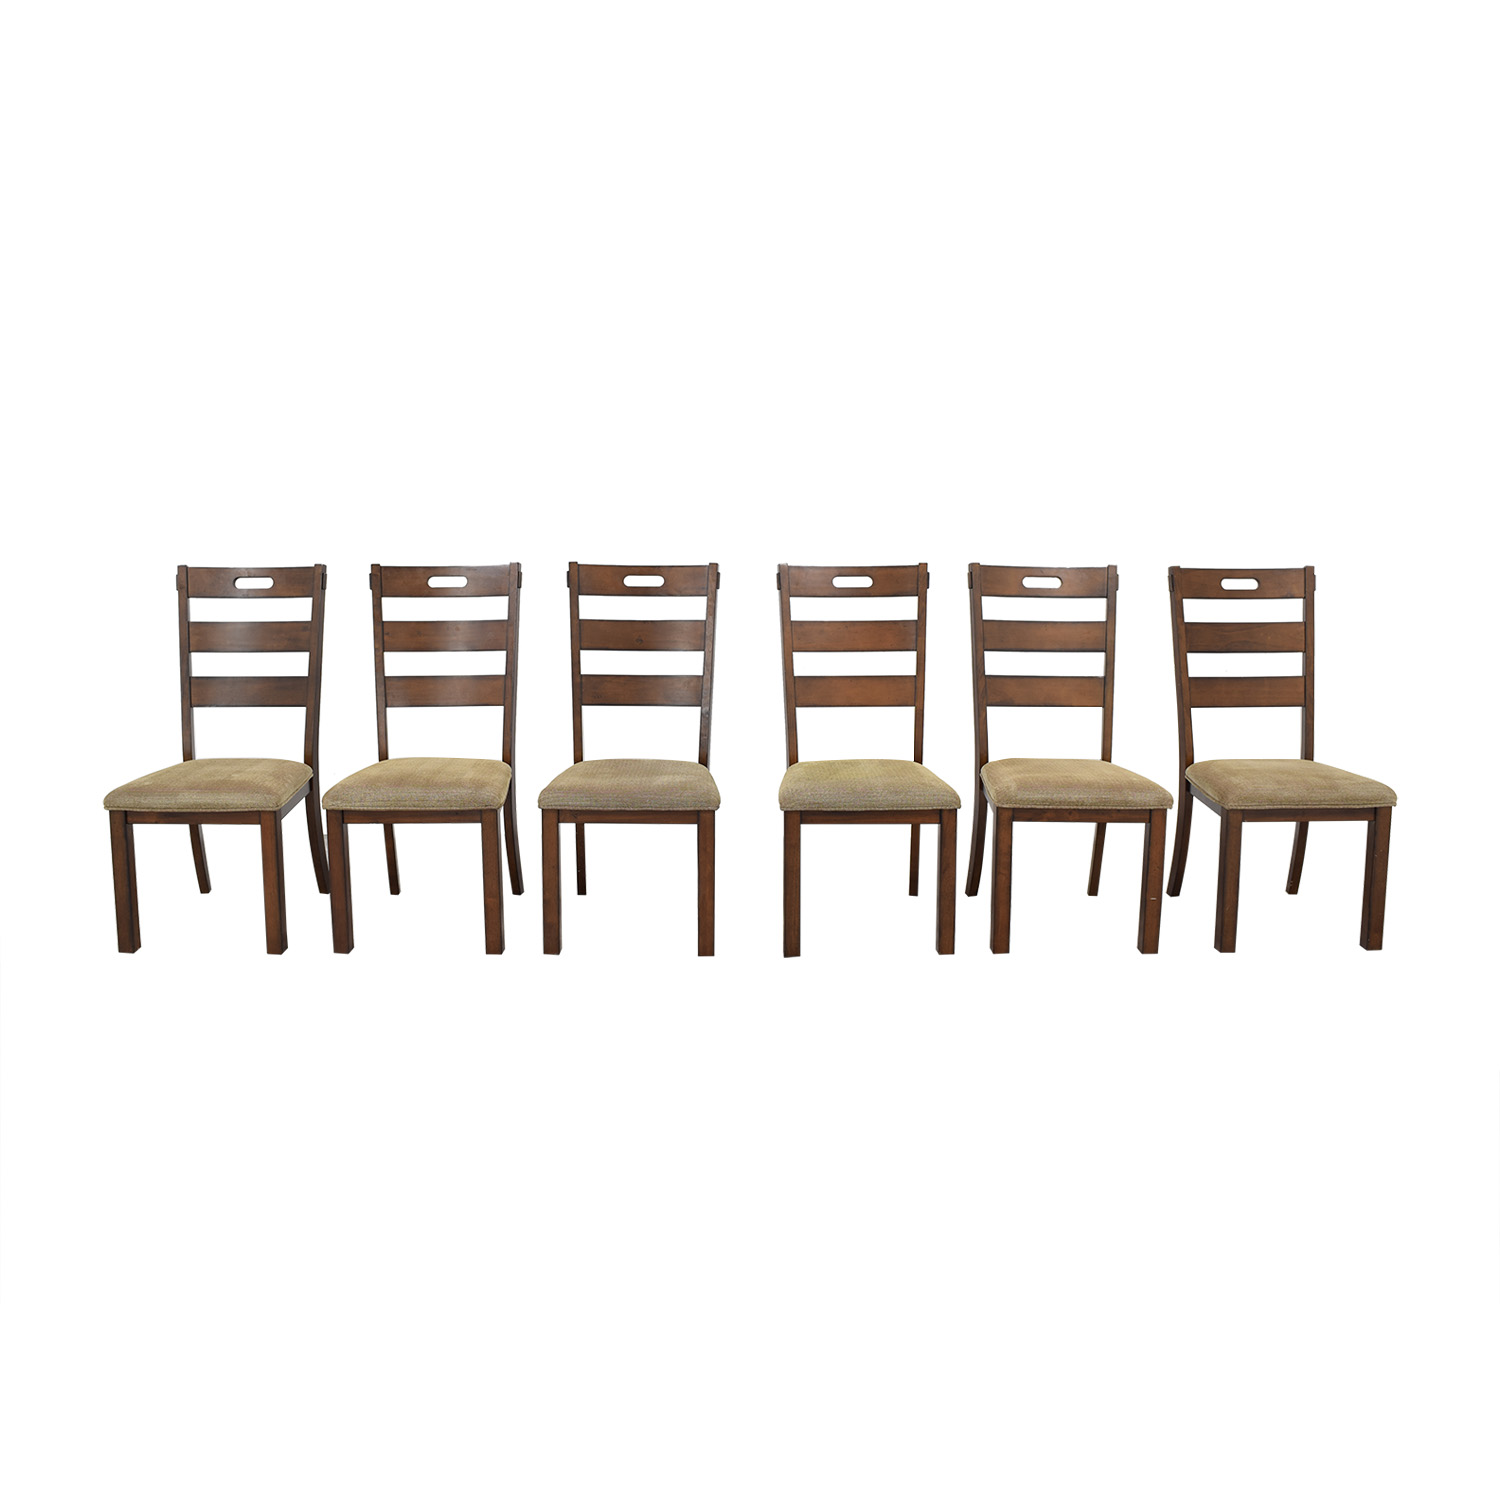 shop Wayfair Ladder Back Upholstered Dining Chairs Wayfair Dining Chairs